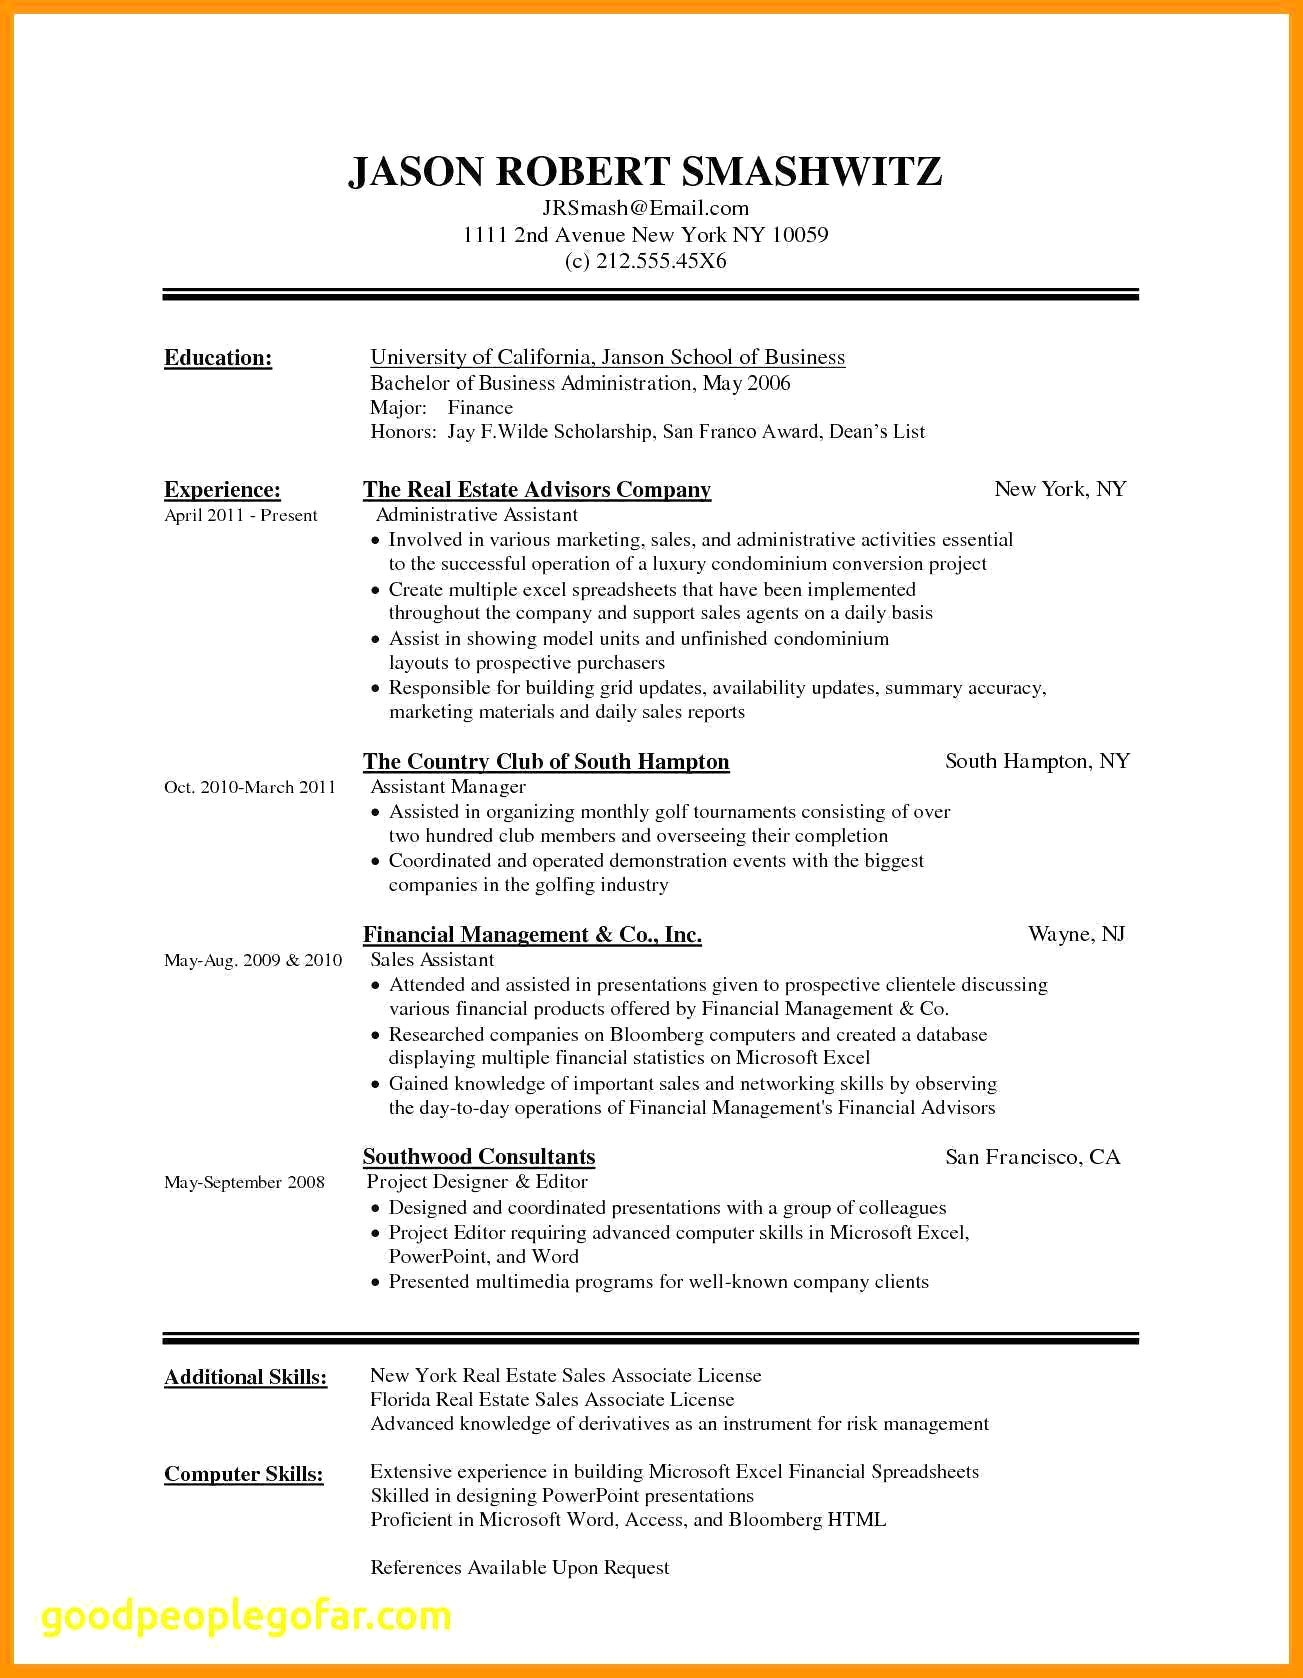 Resume Templates Word Free Download - 56 Design Download Resume Templates Word